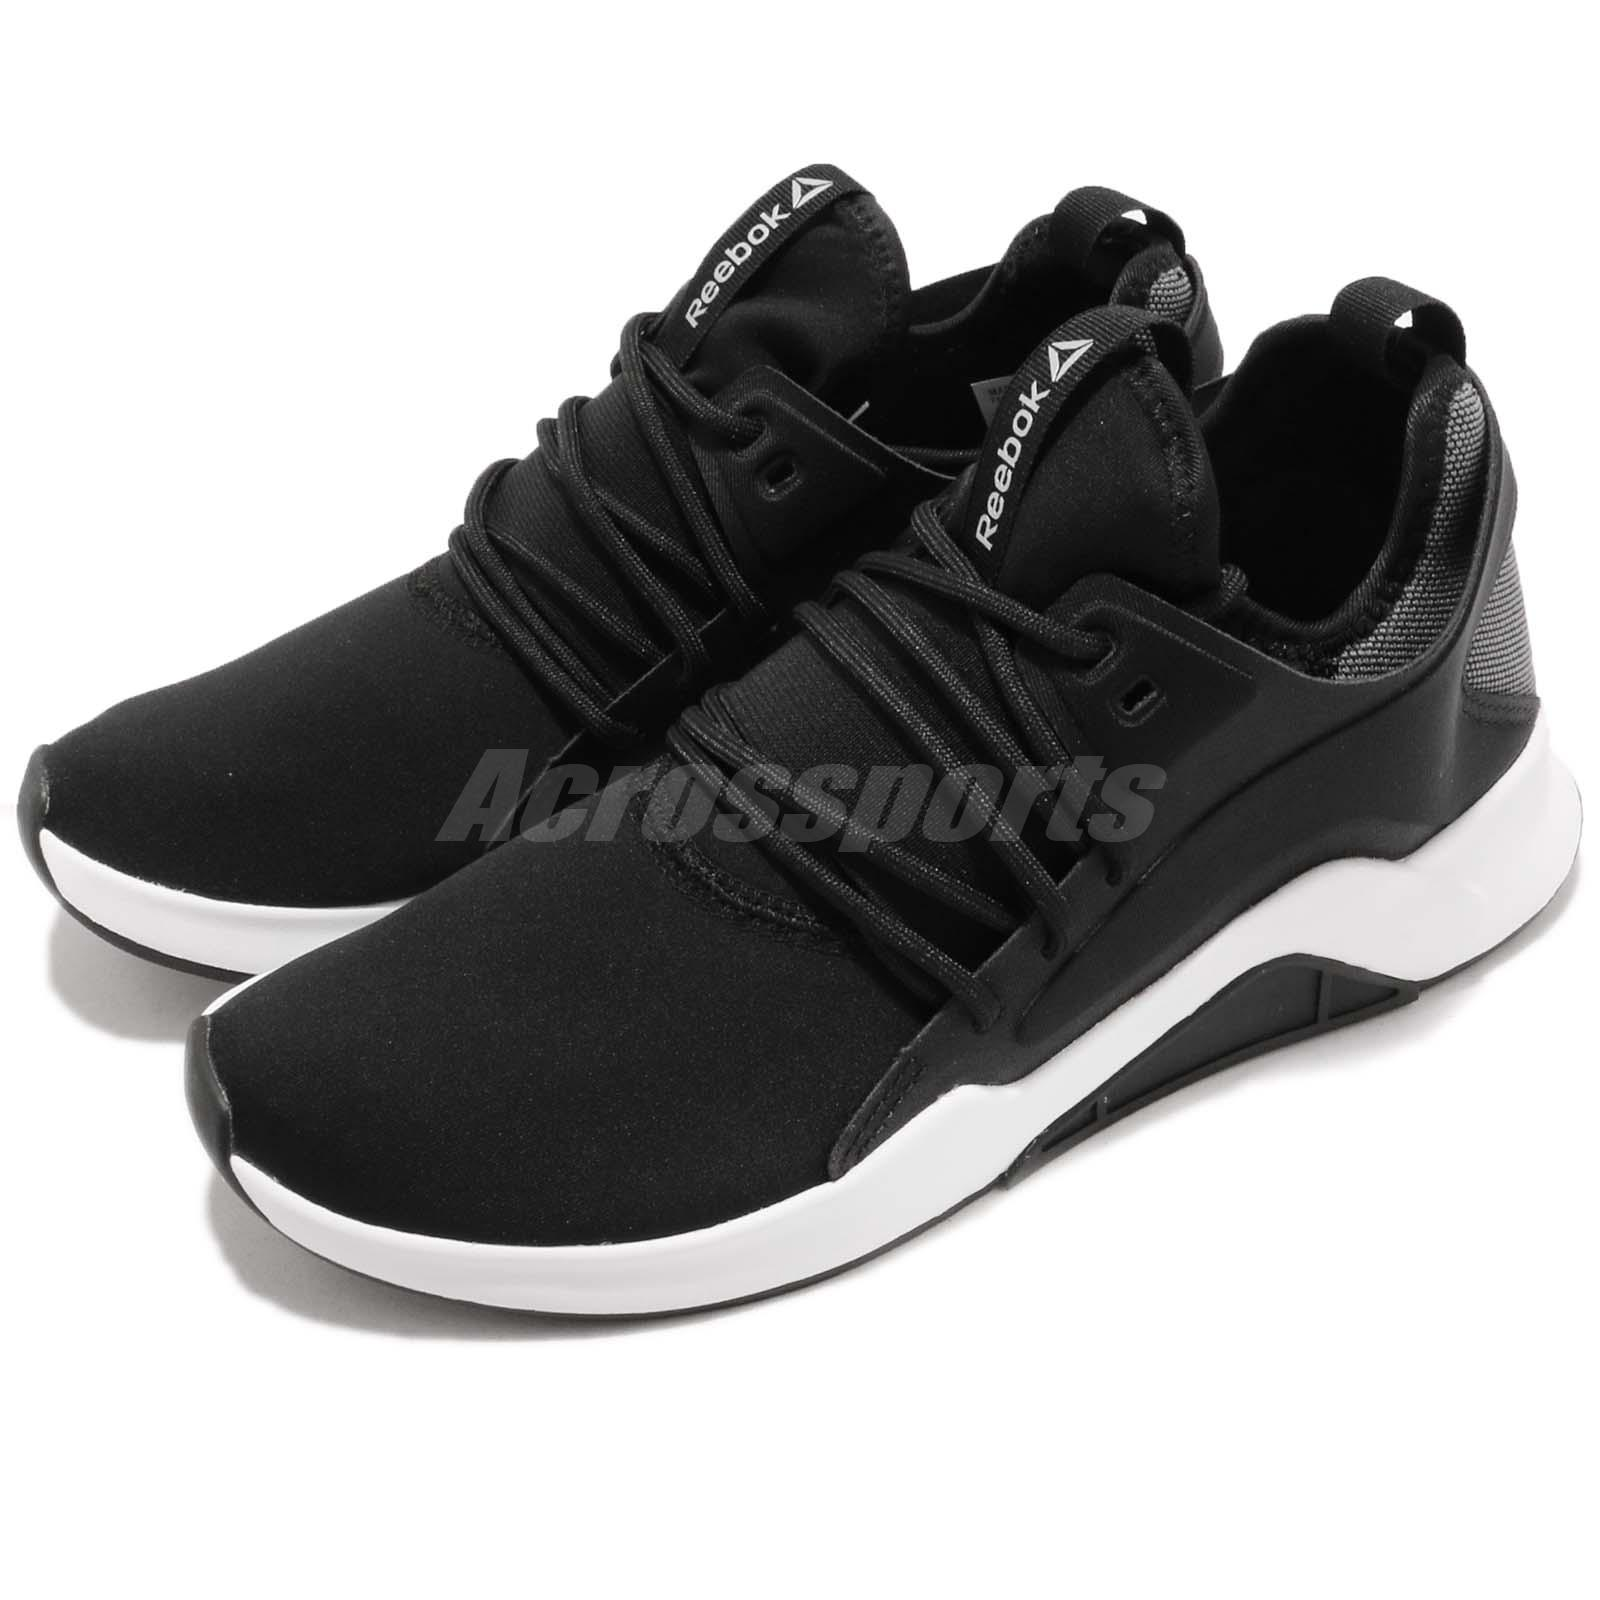 reebok trainer 1.0 women's